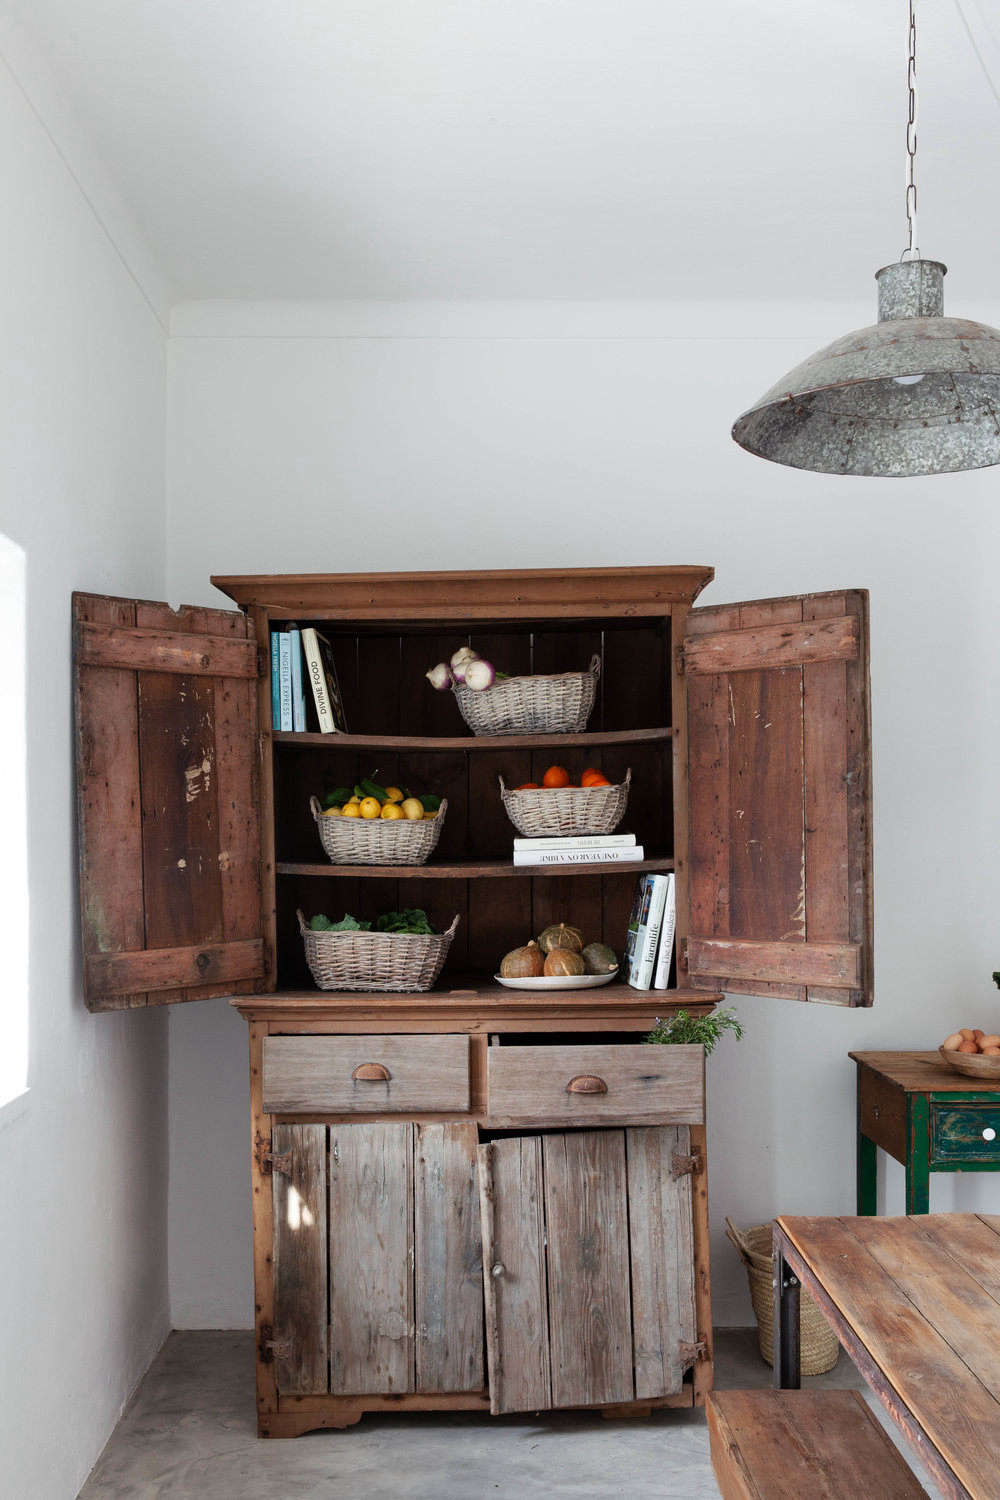 The guest house is located on an organic farm; breakfast (perhaps with fresh-laid eggs from the couple&#8